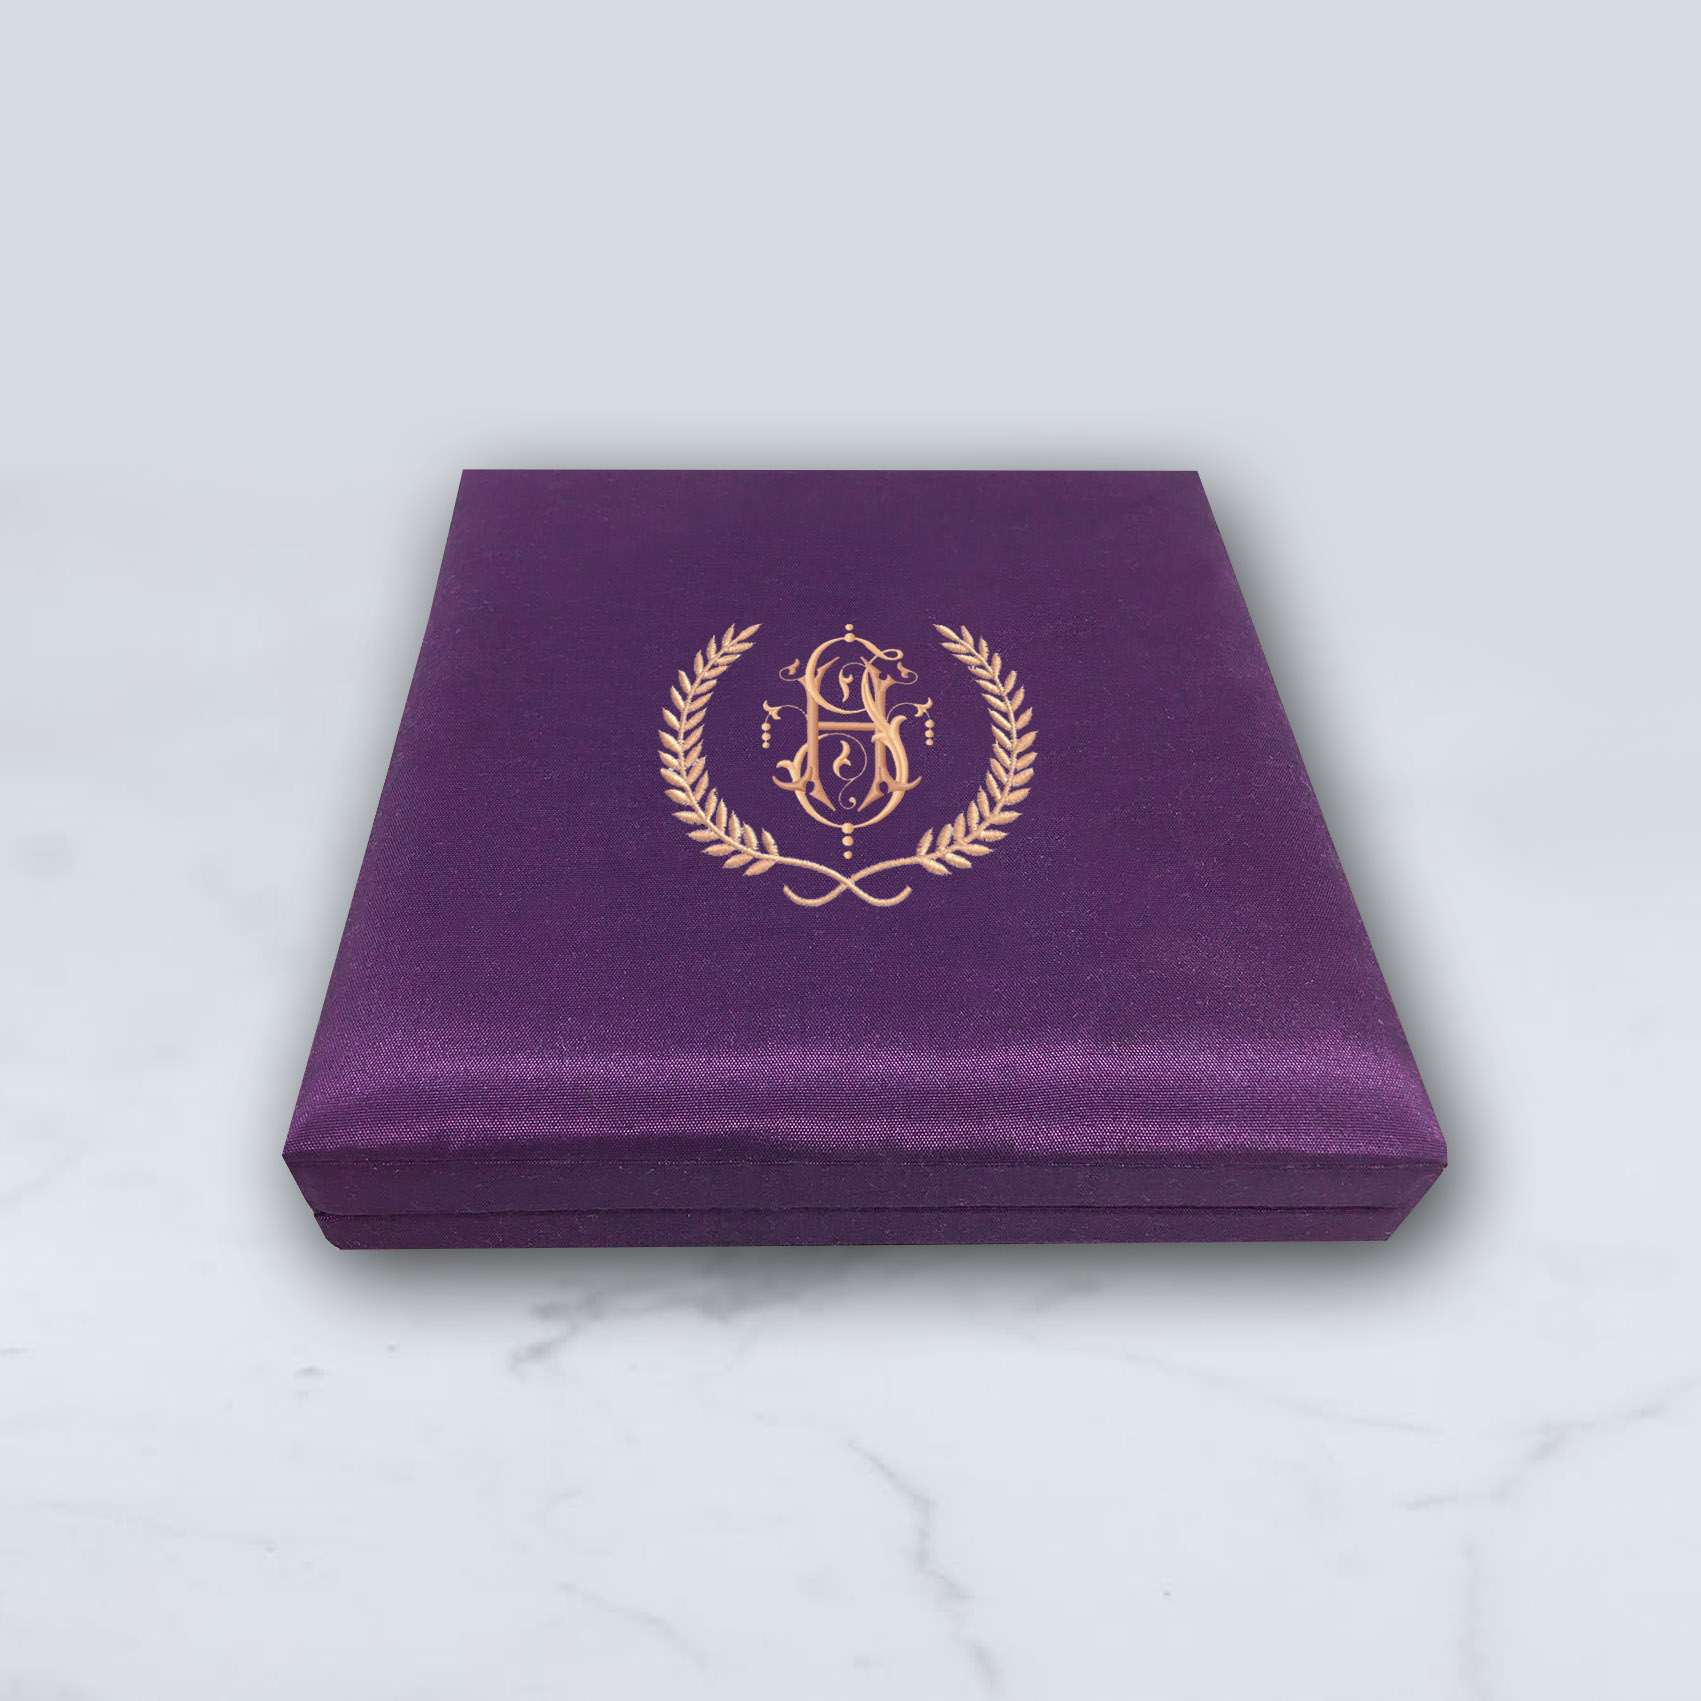 Monogram embroidered purple silk invitation box